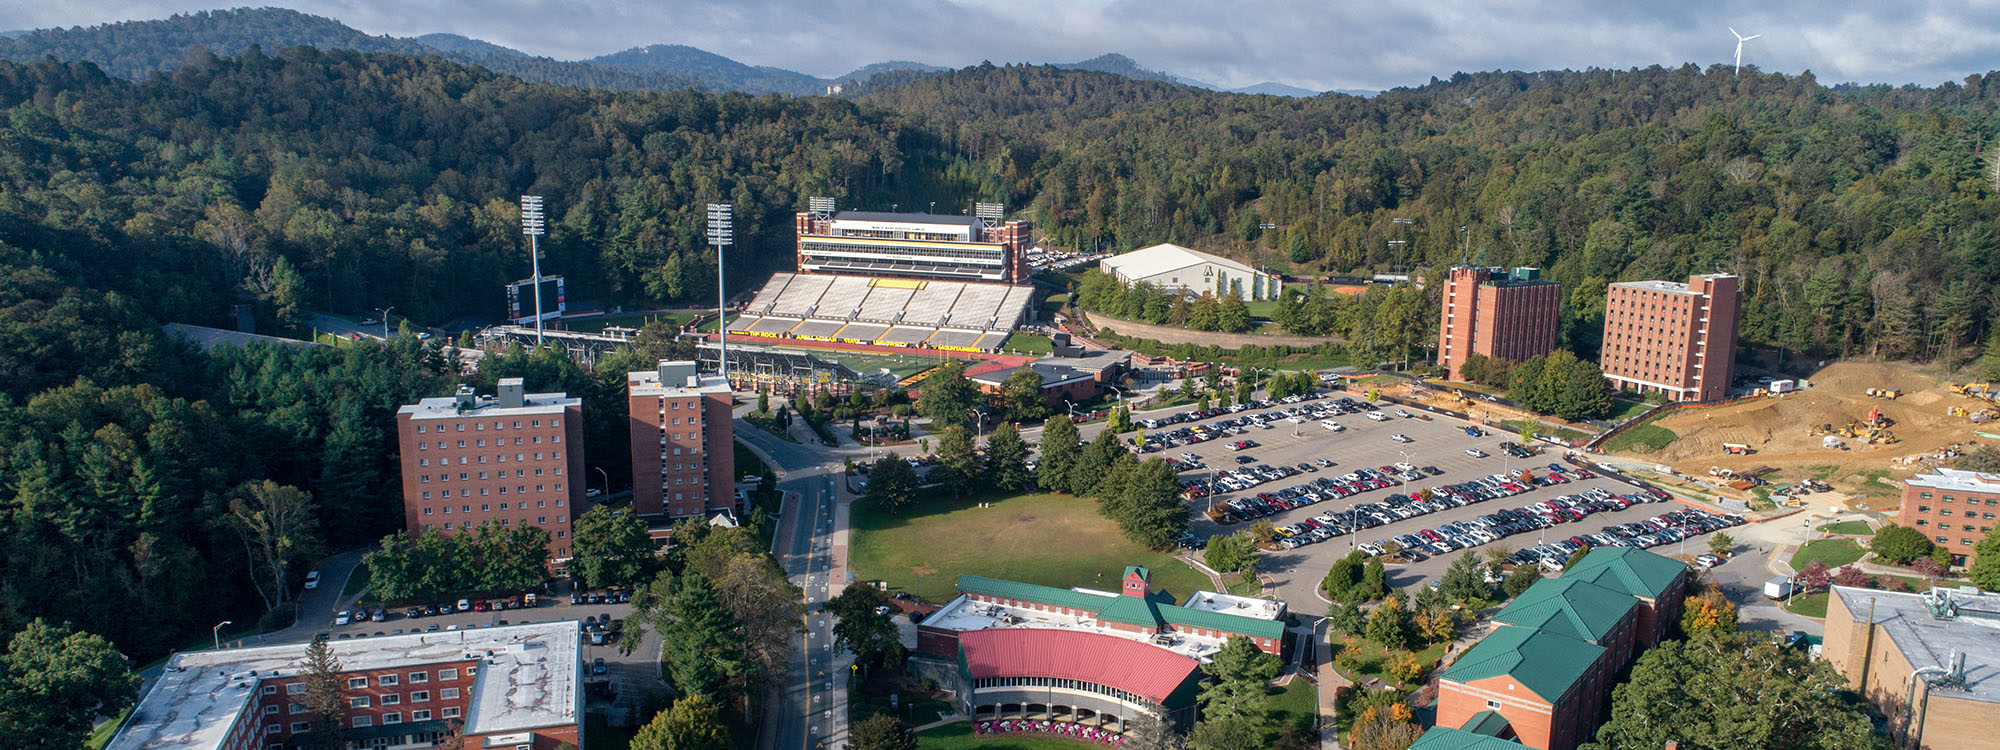 Appalachian State University's improvement and development projects approved by UNC Board of Governors